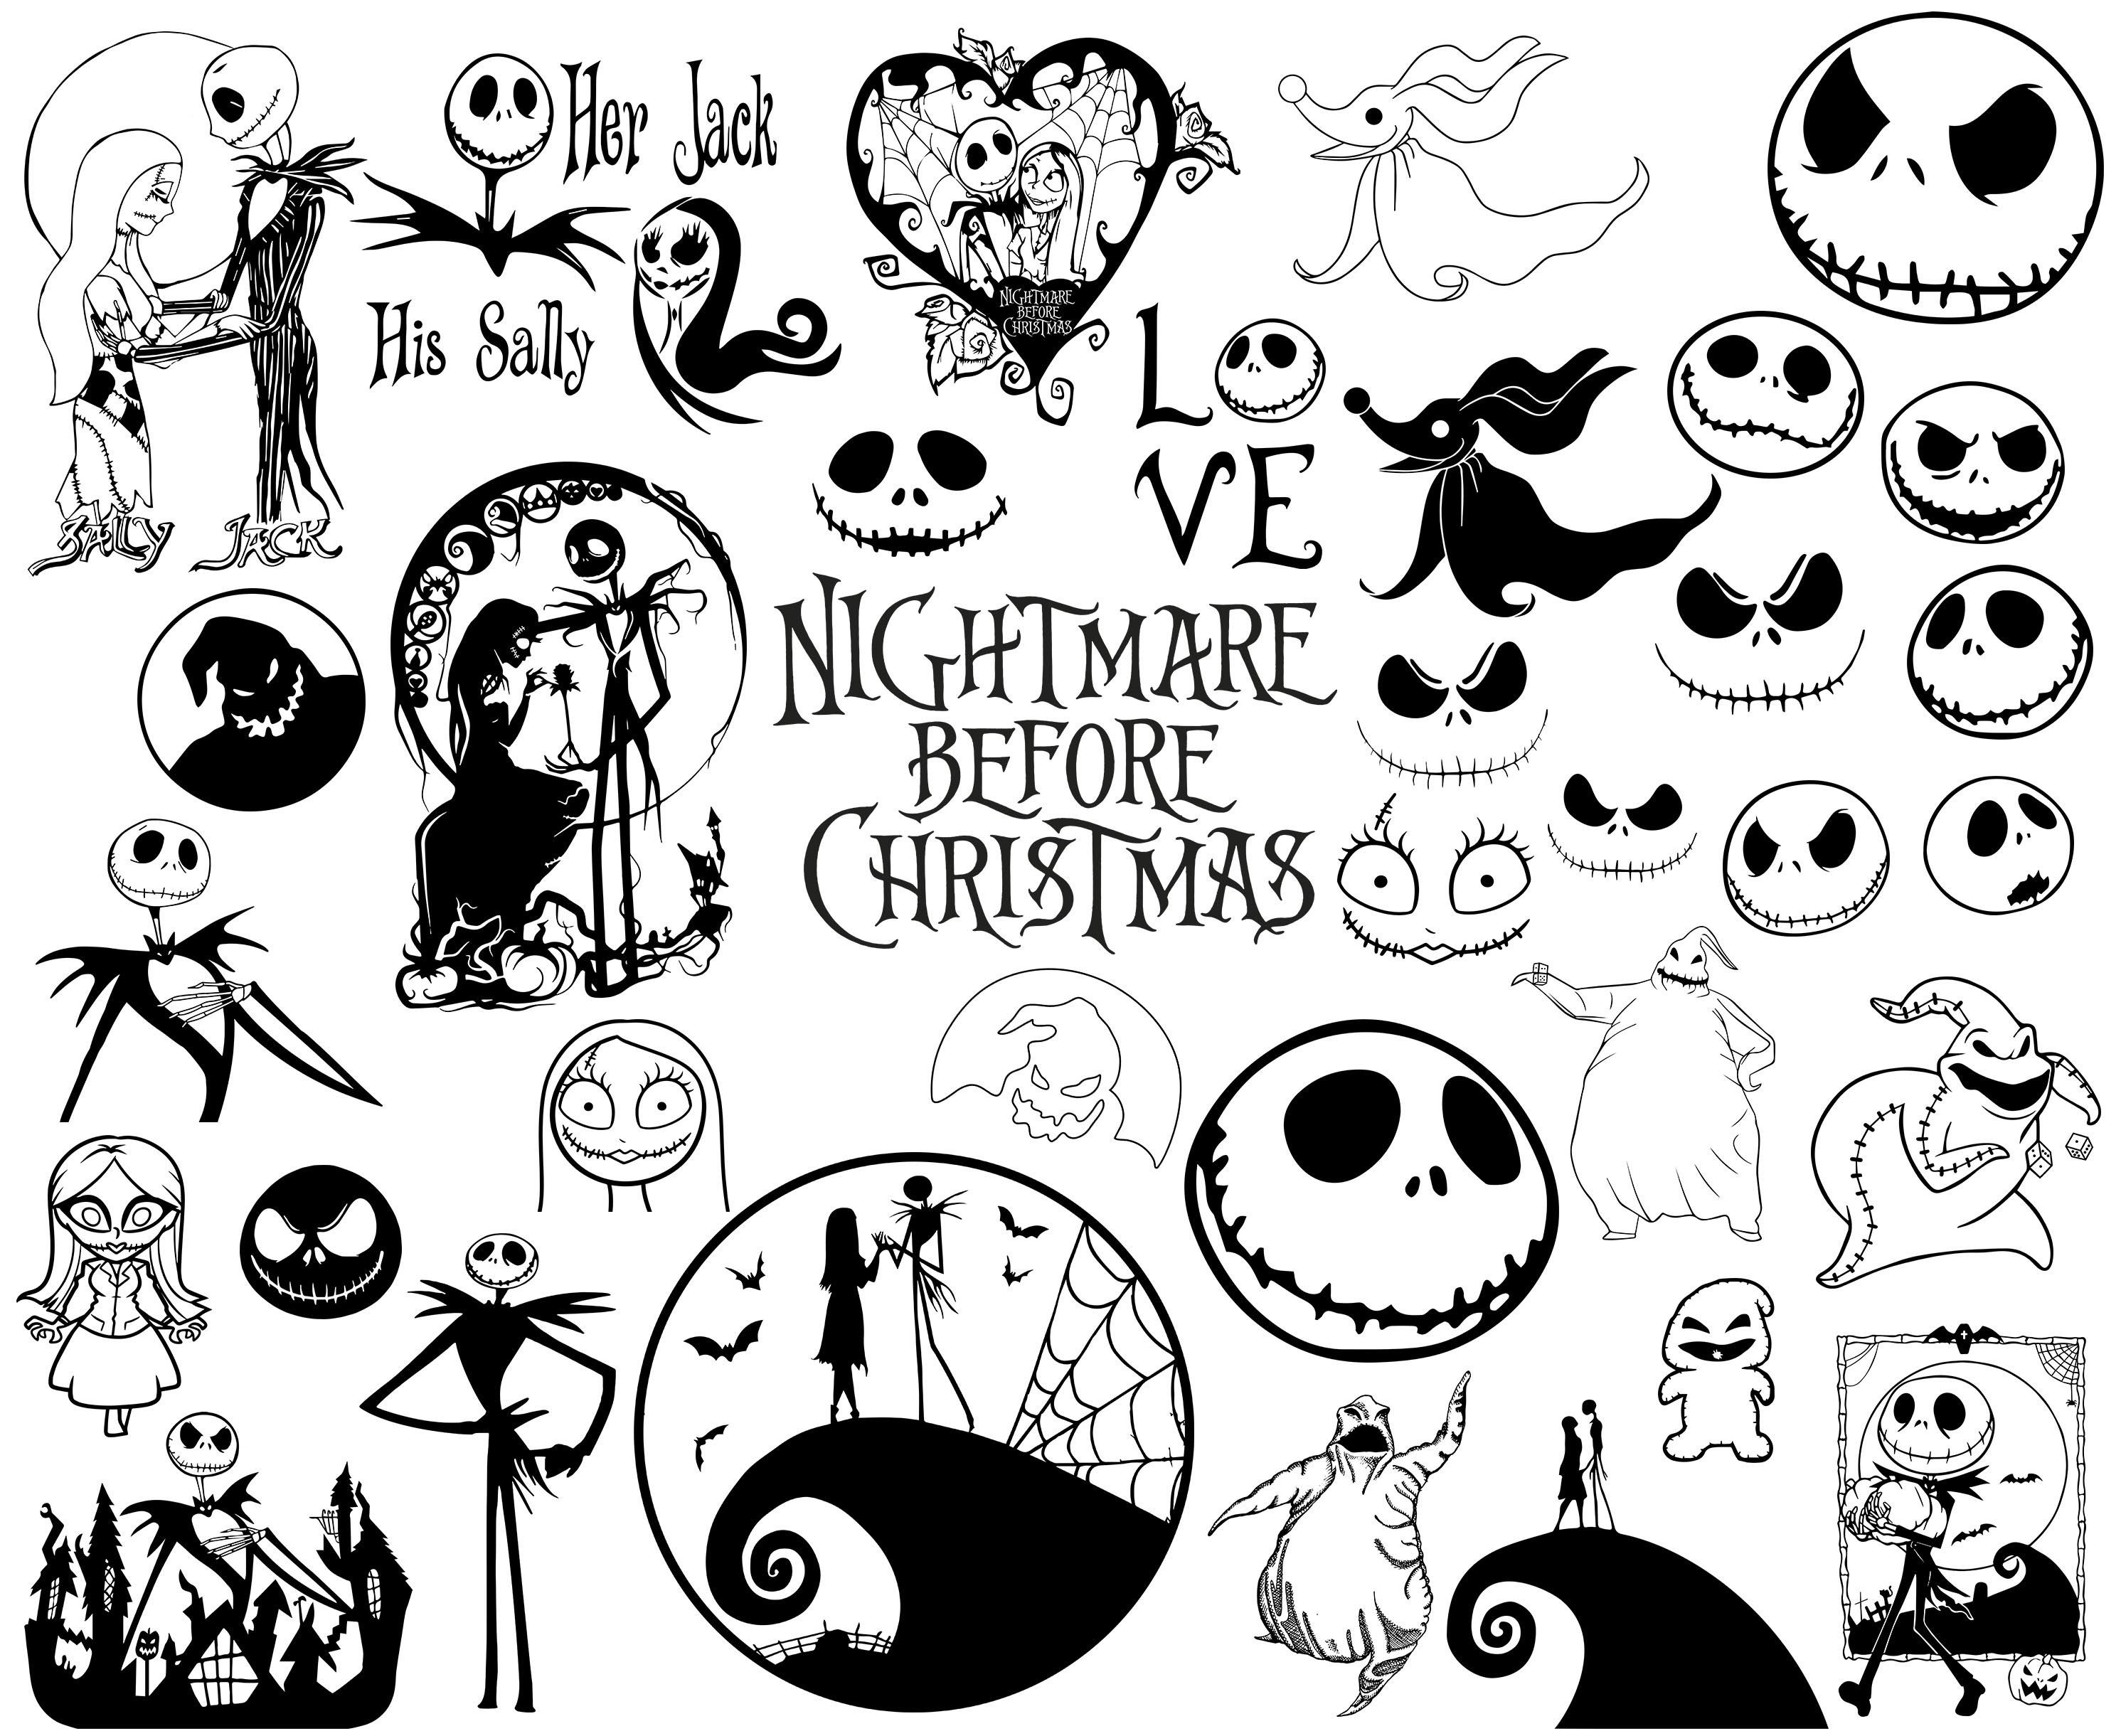 Jack and sally svg, boogieman halloween png, nightmare before christmas, cut svg files for cricut jack skellington, oogie boogie svg,. Nightmare Before Christmas Svg Nightmare Svg Christmas Svg Etsy Nightmare Before Christmas Tattoo Nightmare Before Christmas Drawings Christmas Tattoo